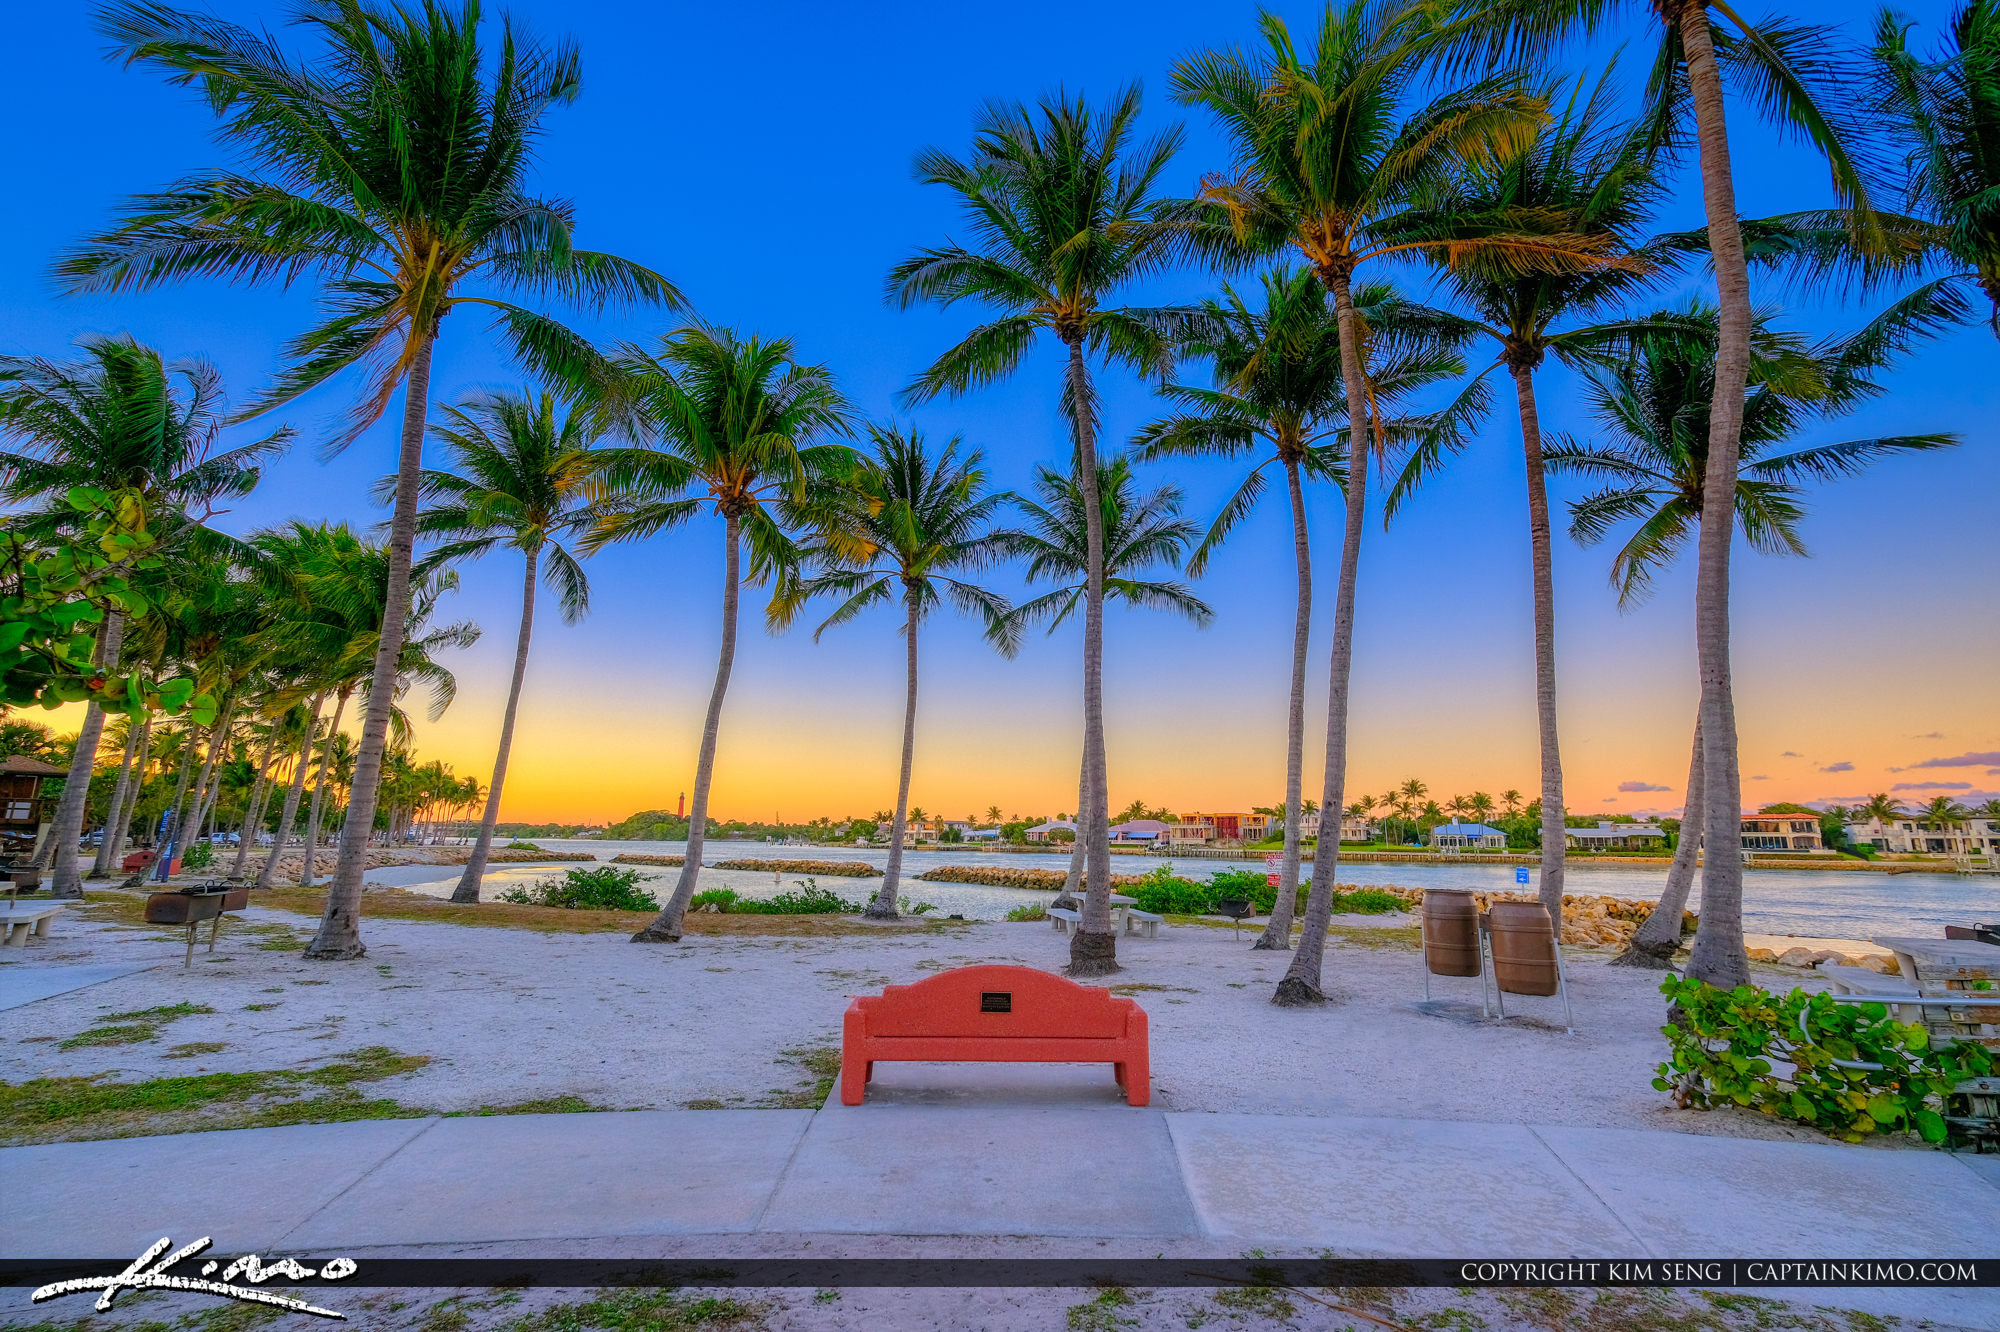 Dubois Park Coconut Trees at Memorial Bench Along the Waterway Jupiter Florida